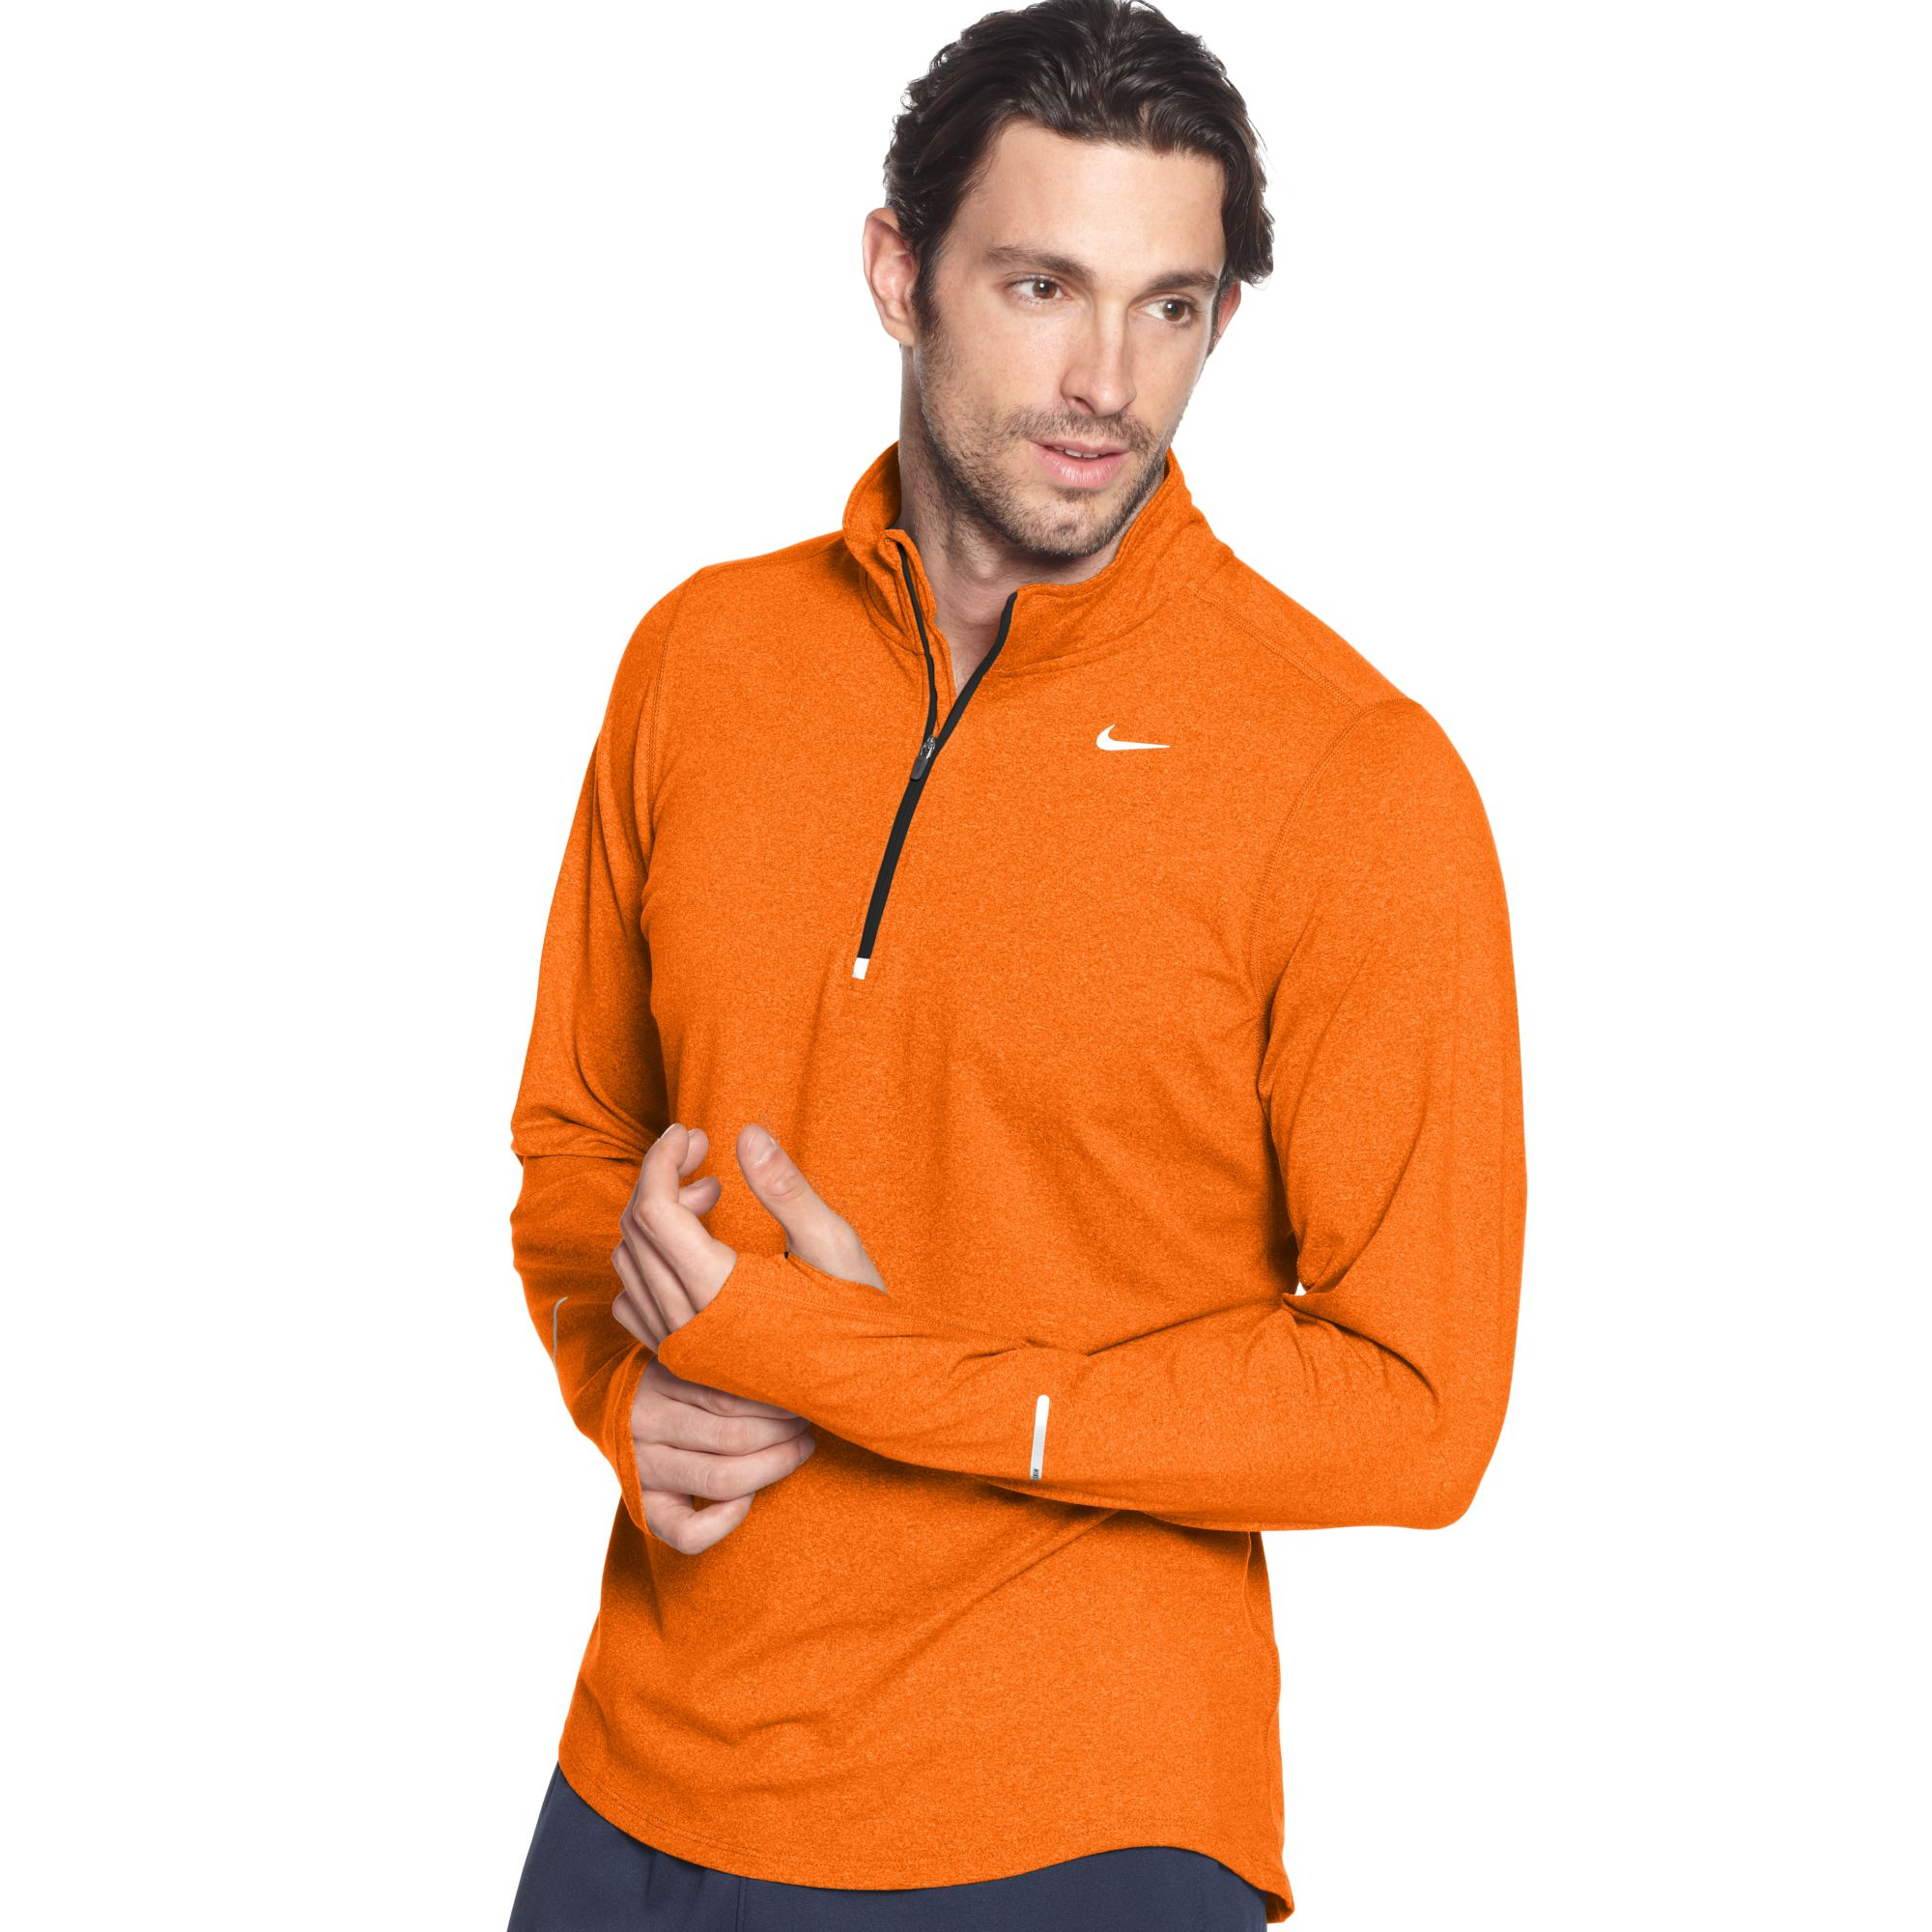 bbb3fa2e994a Lyst - Nike Pullover Element Half Zip Shirt in Orange for Men